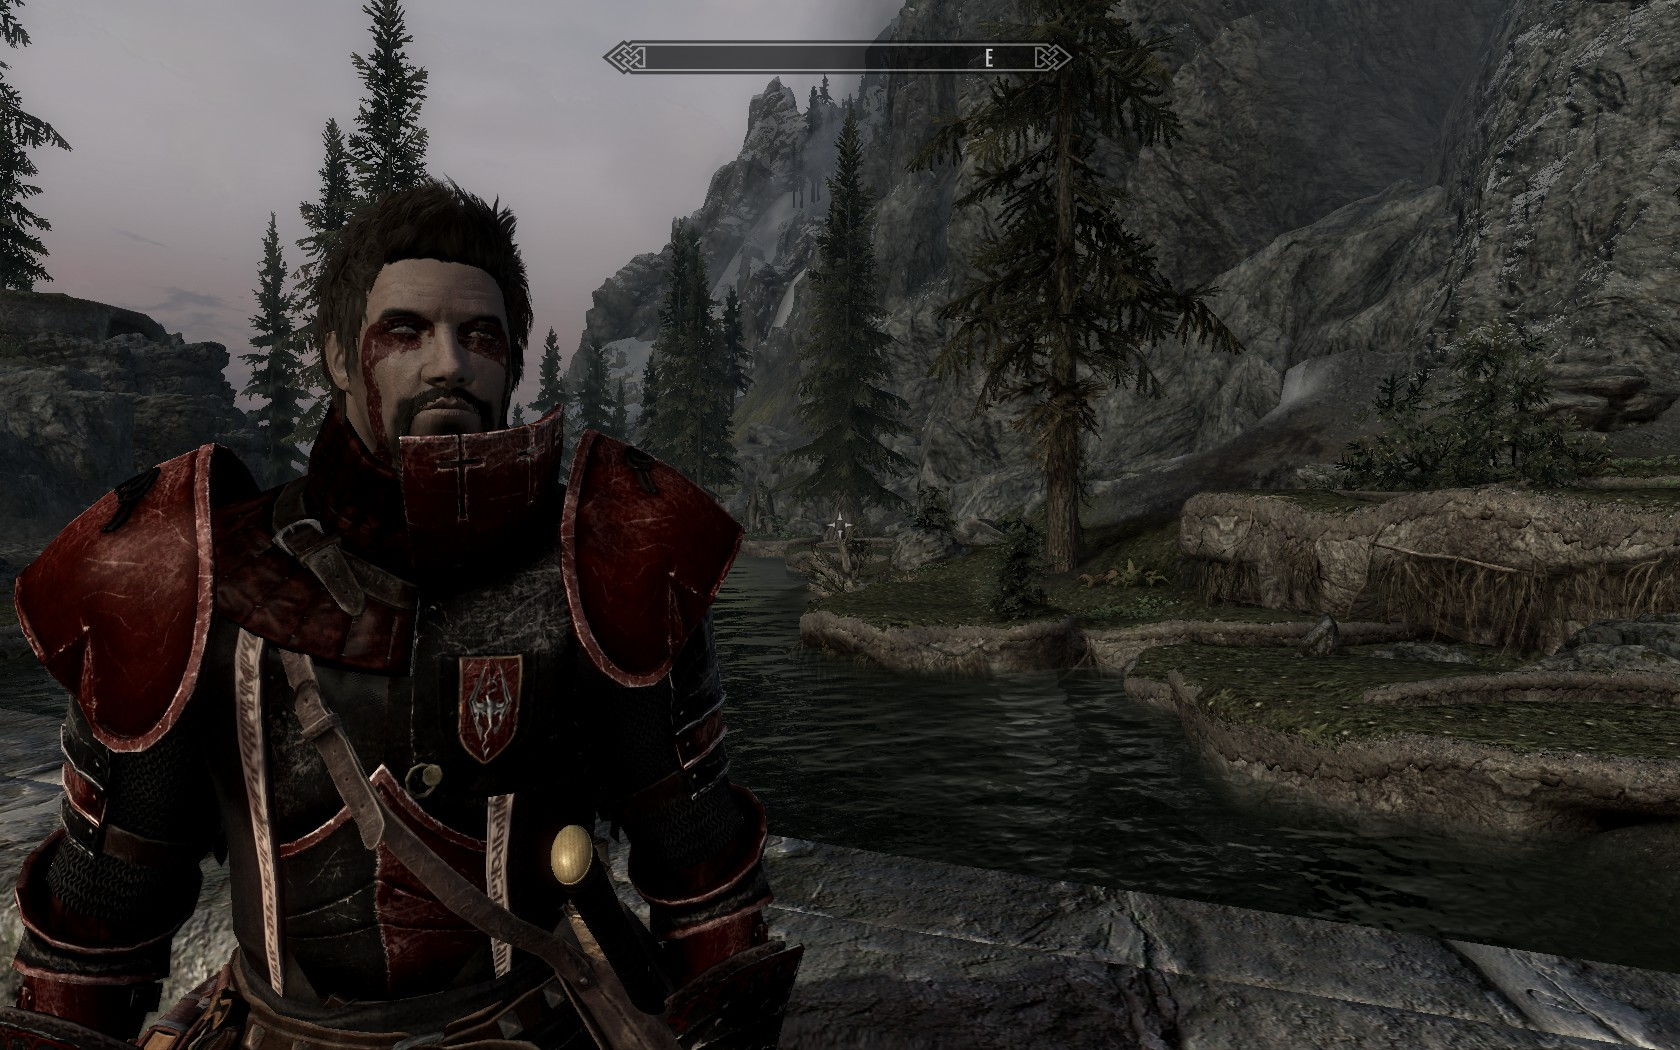 Unofficial Skyrim Patch - Page 954 - The Nexus Forums